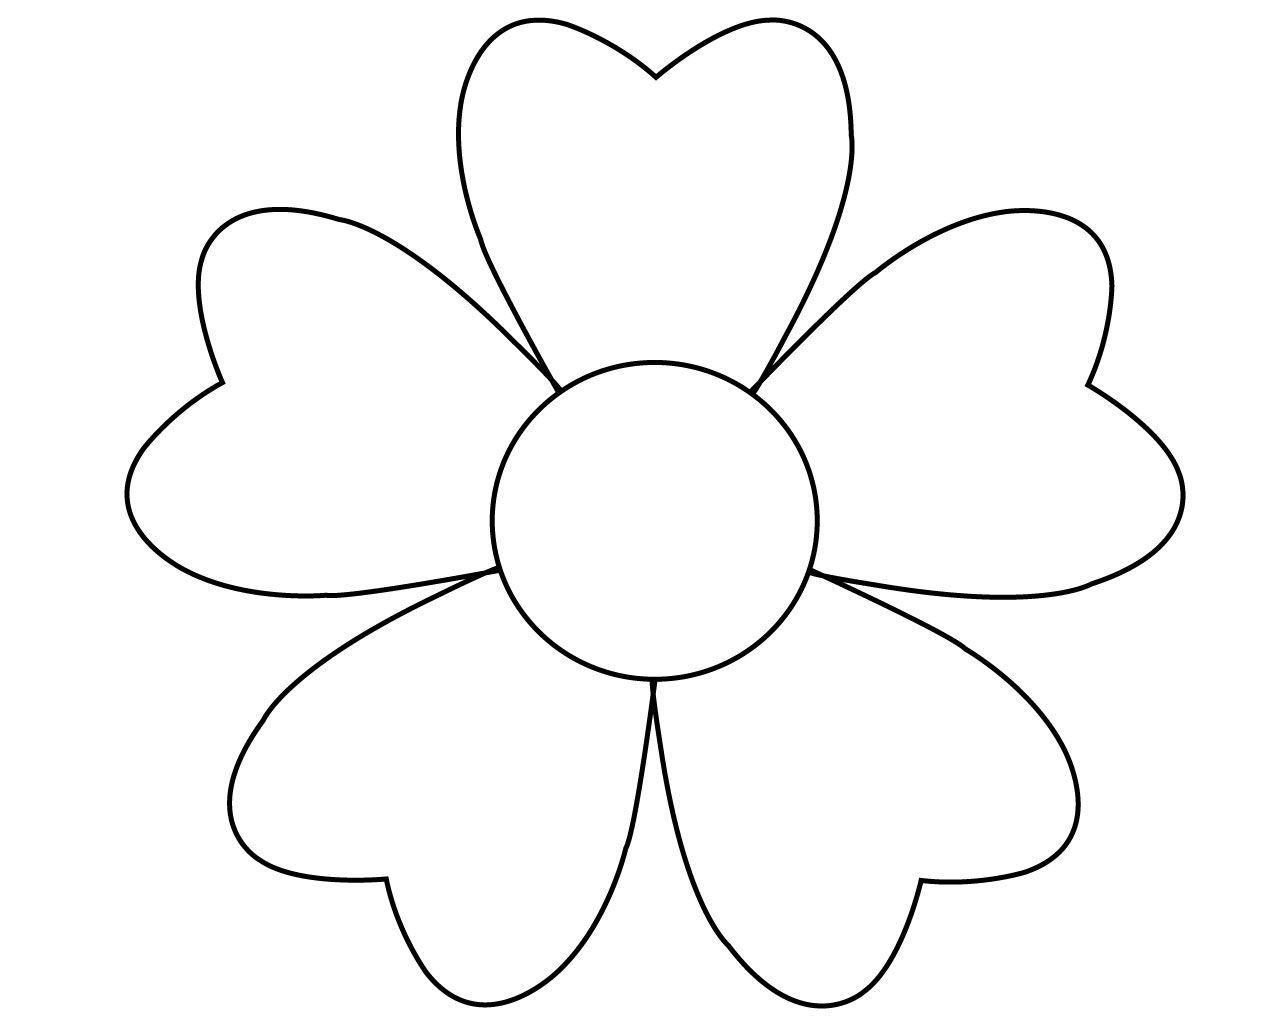 printable simple flower coloring pages sunflower drawing simple at getdrawings free download coloring flower simple printable pages